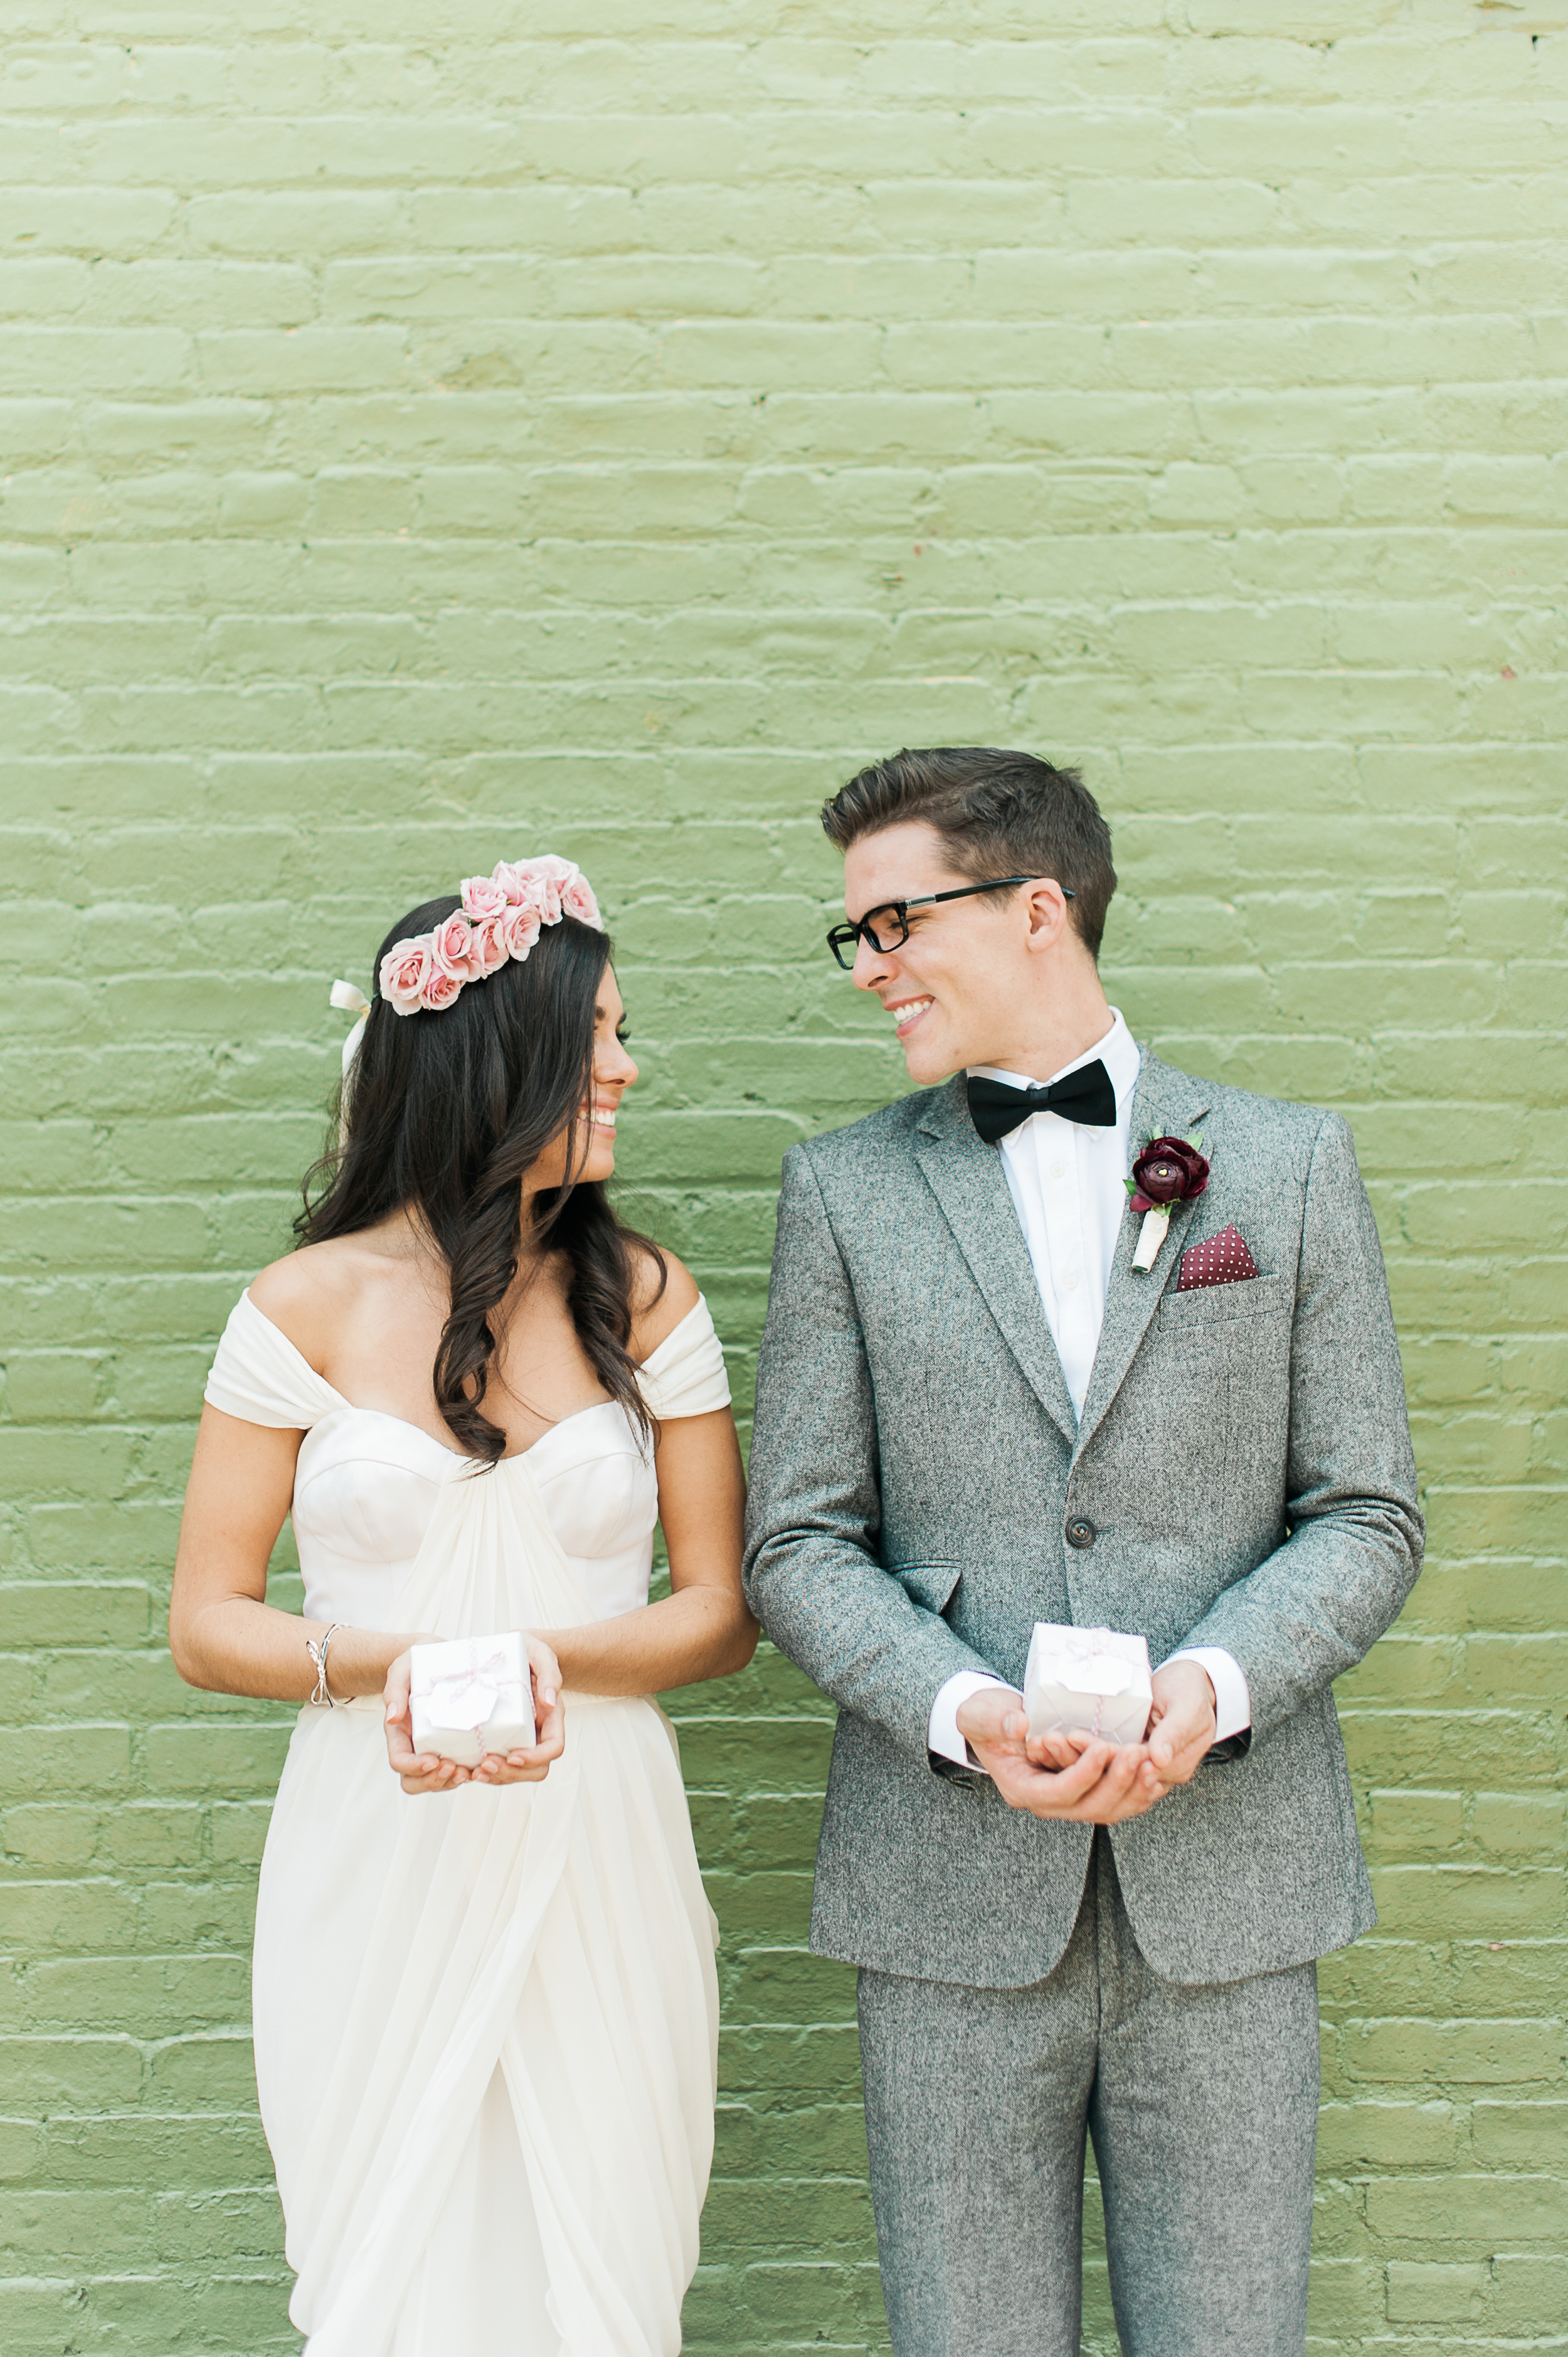 the_green_building_wedding_brklyn view photography_hanaluluco_8.jpg